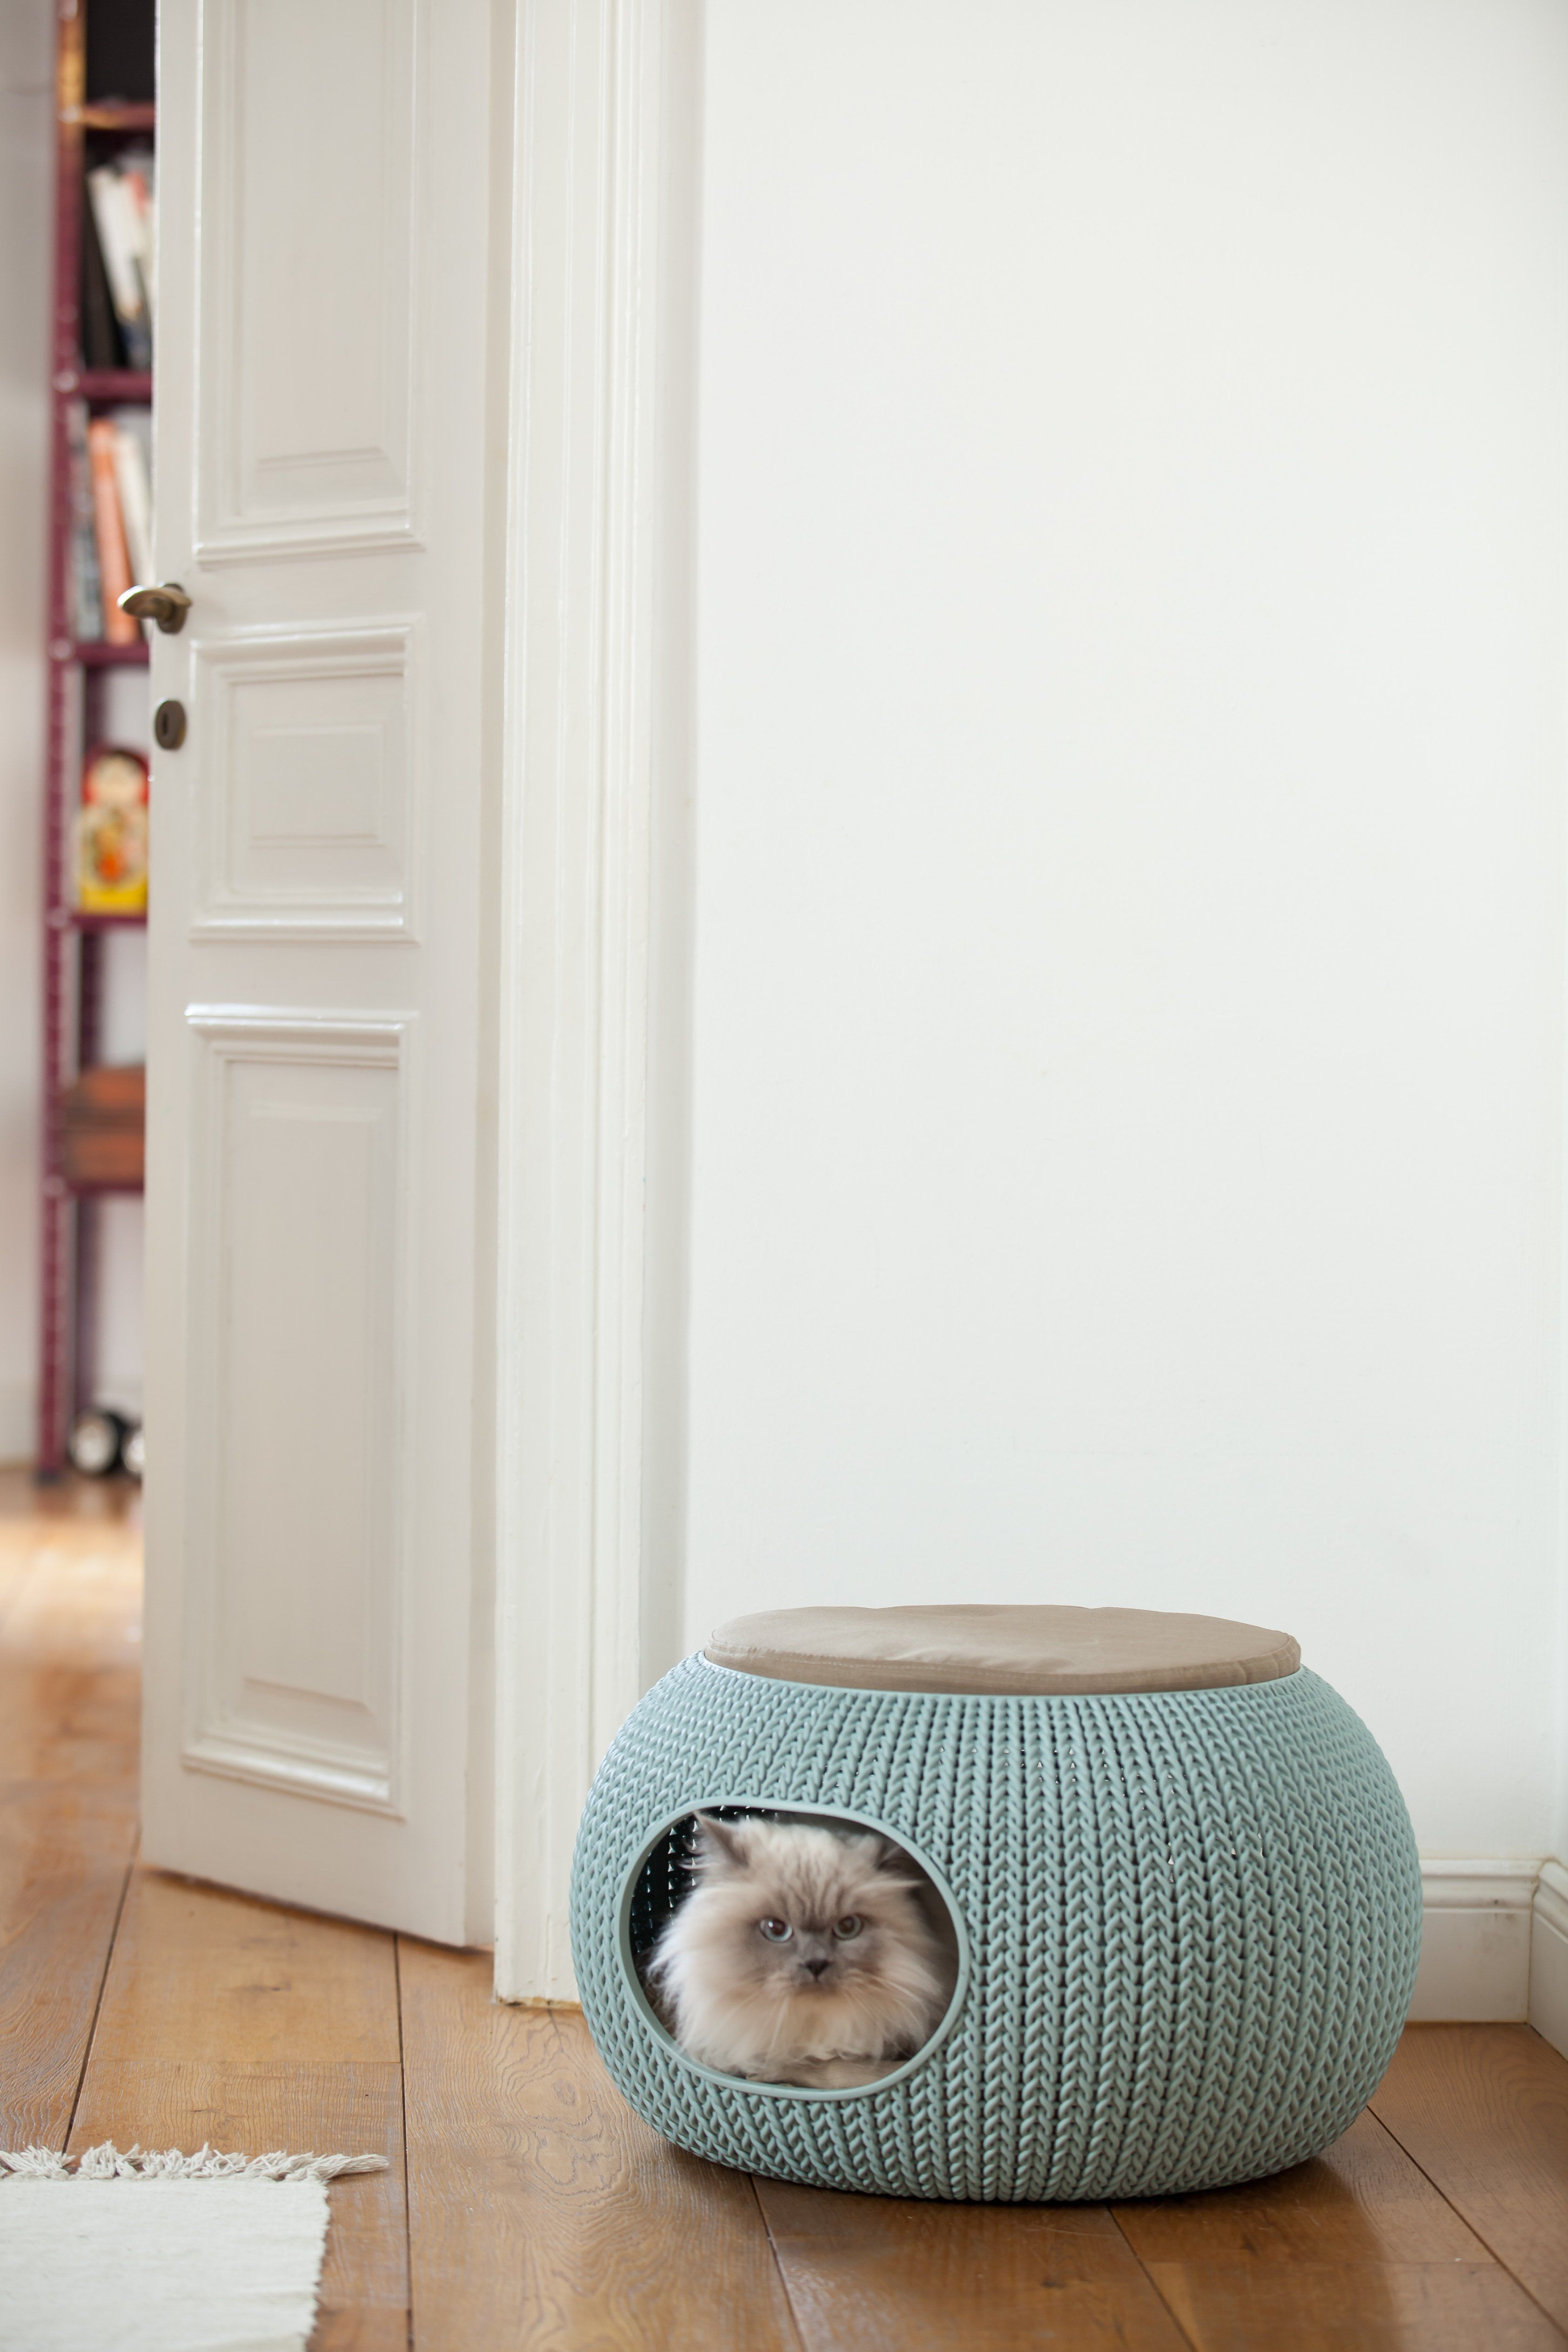 Which Foods Should I Avoid Giving My Cats And Dogs Designer Pet Beds Animal Room Pet Home